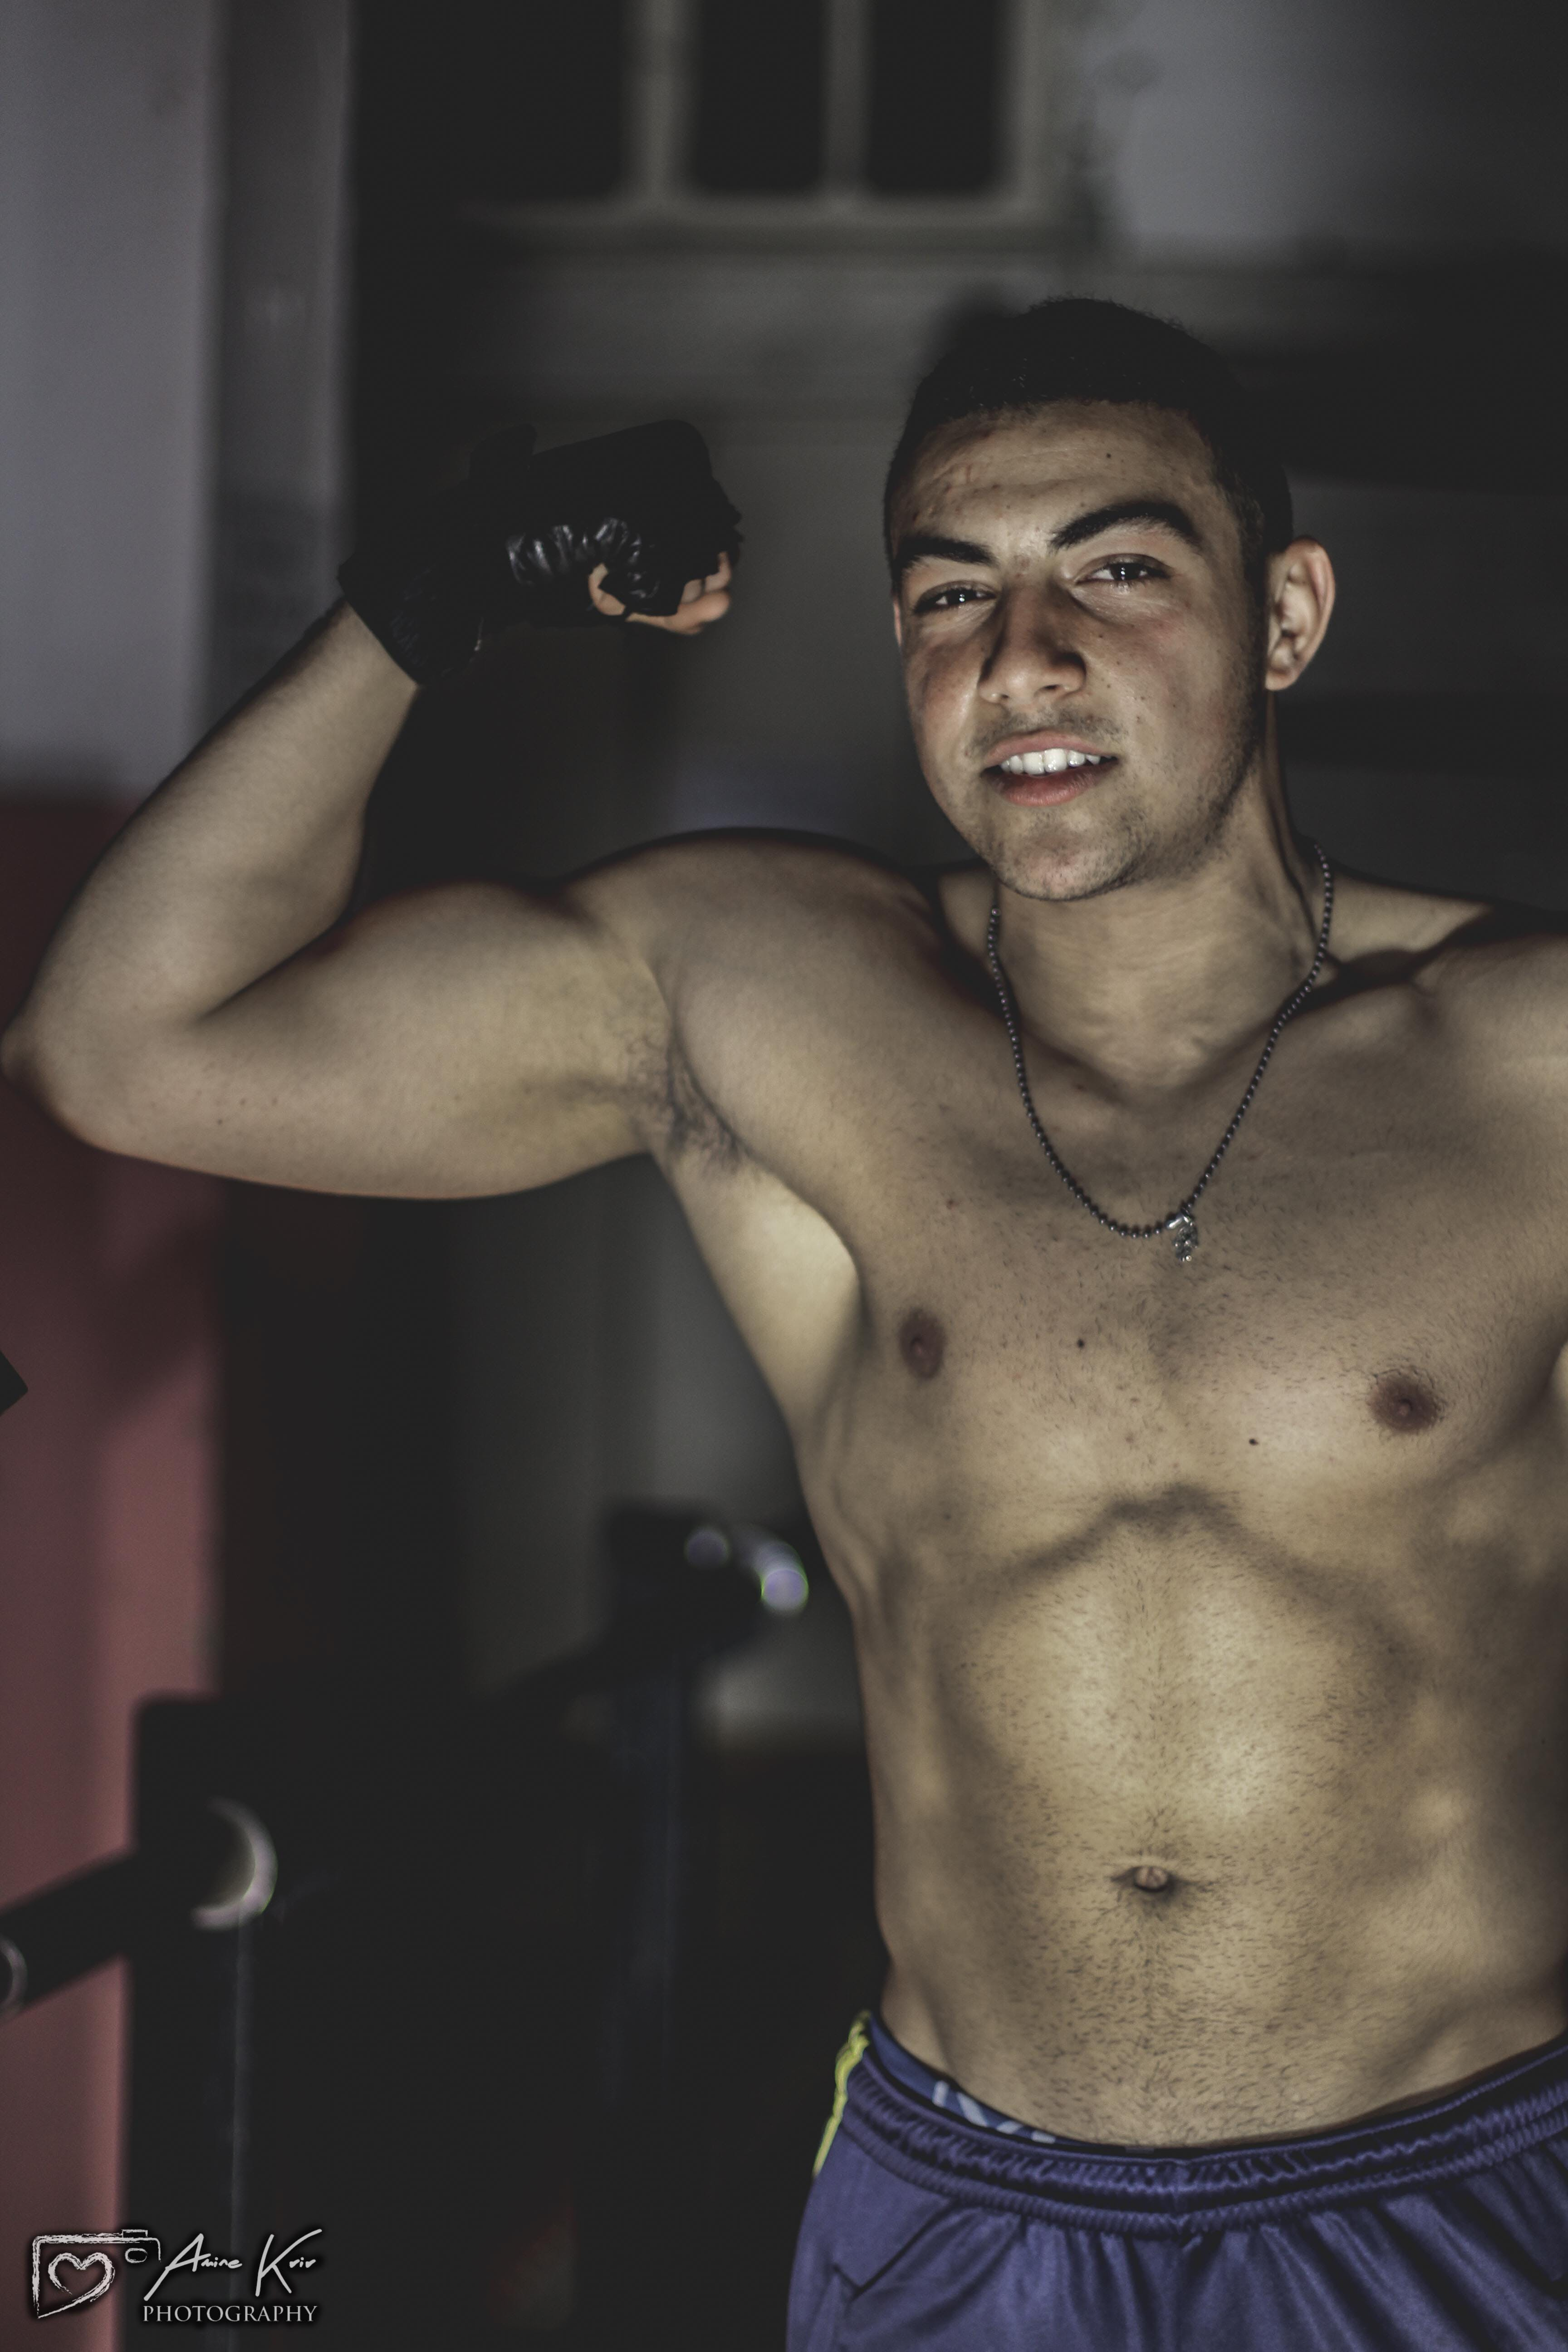 Free stock photo of muscular